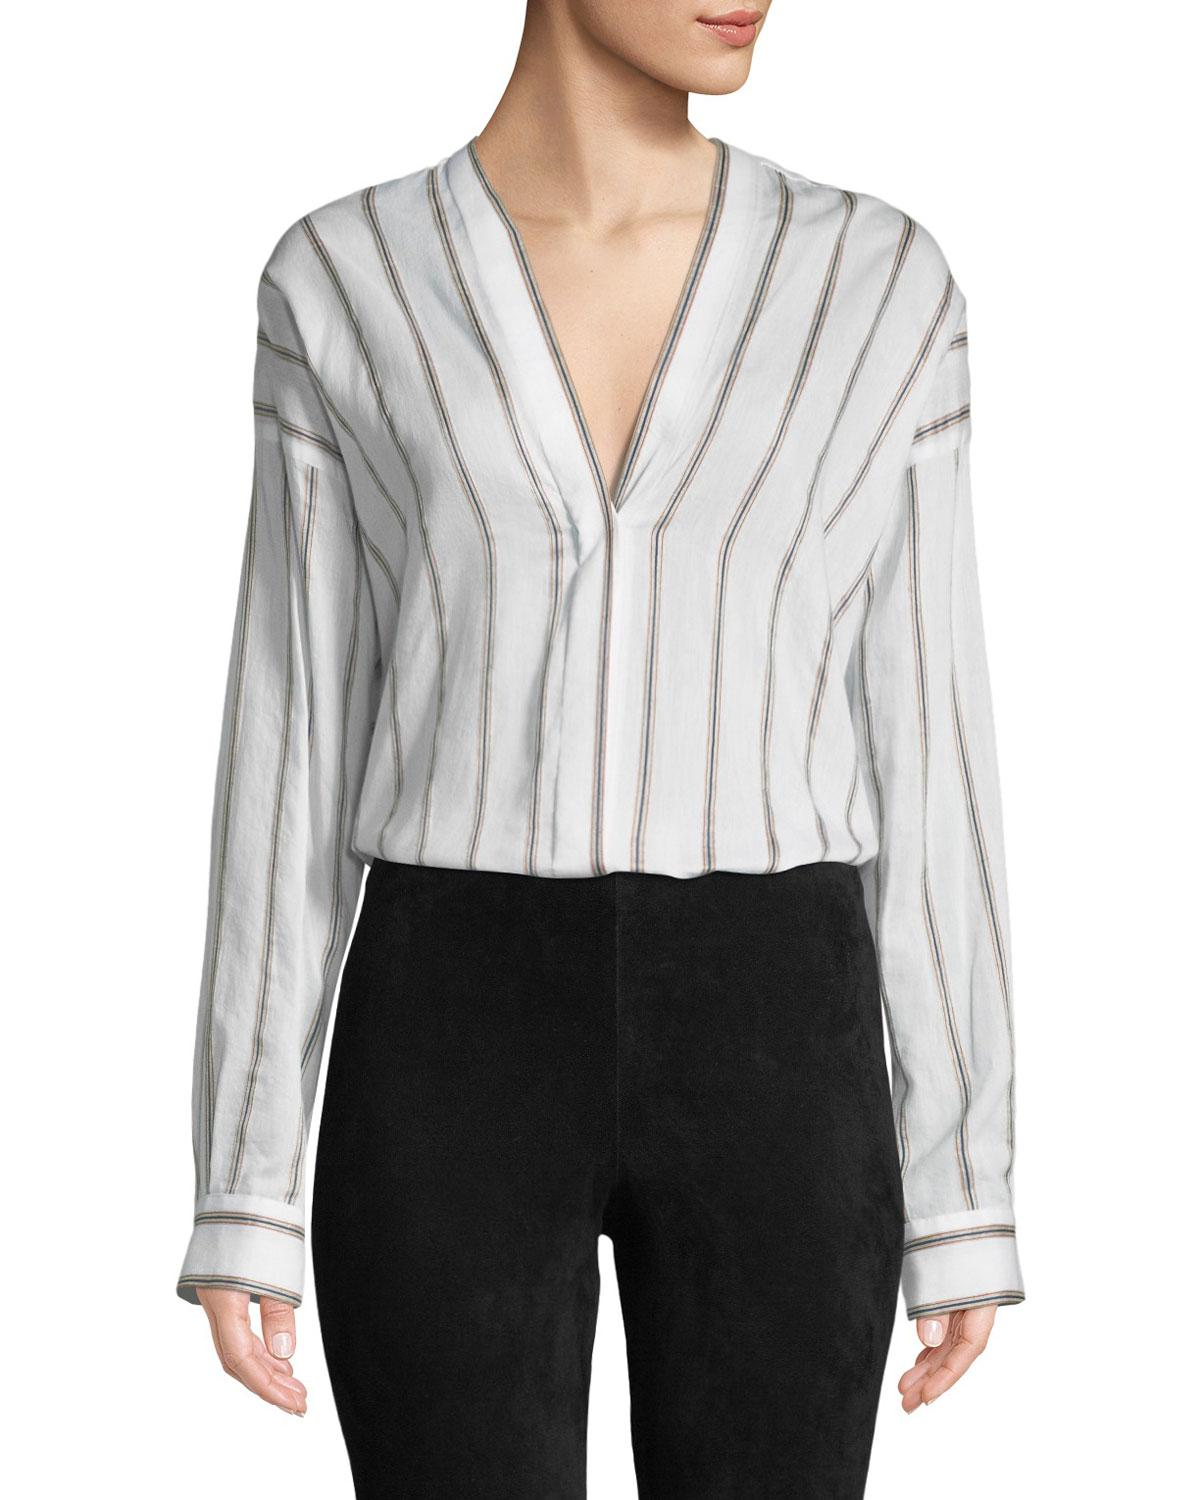 8c0c490dcba8c Lyst - Vince Textured Striped Long-sleeve Blouse in White - Save 18%